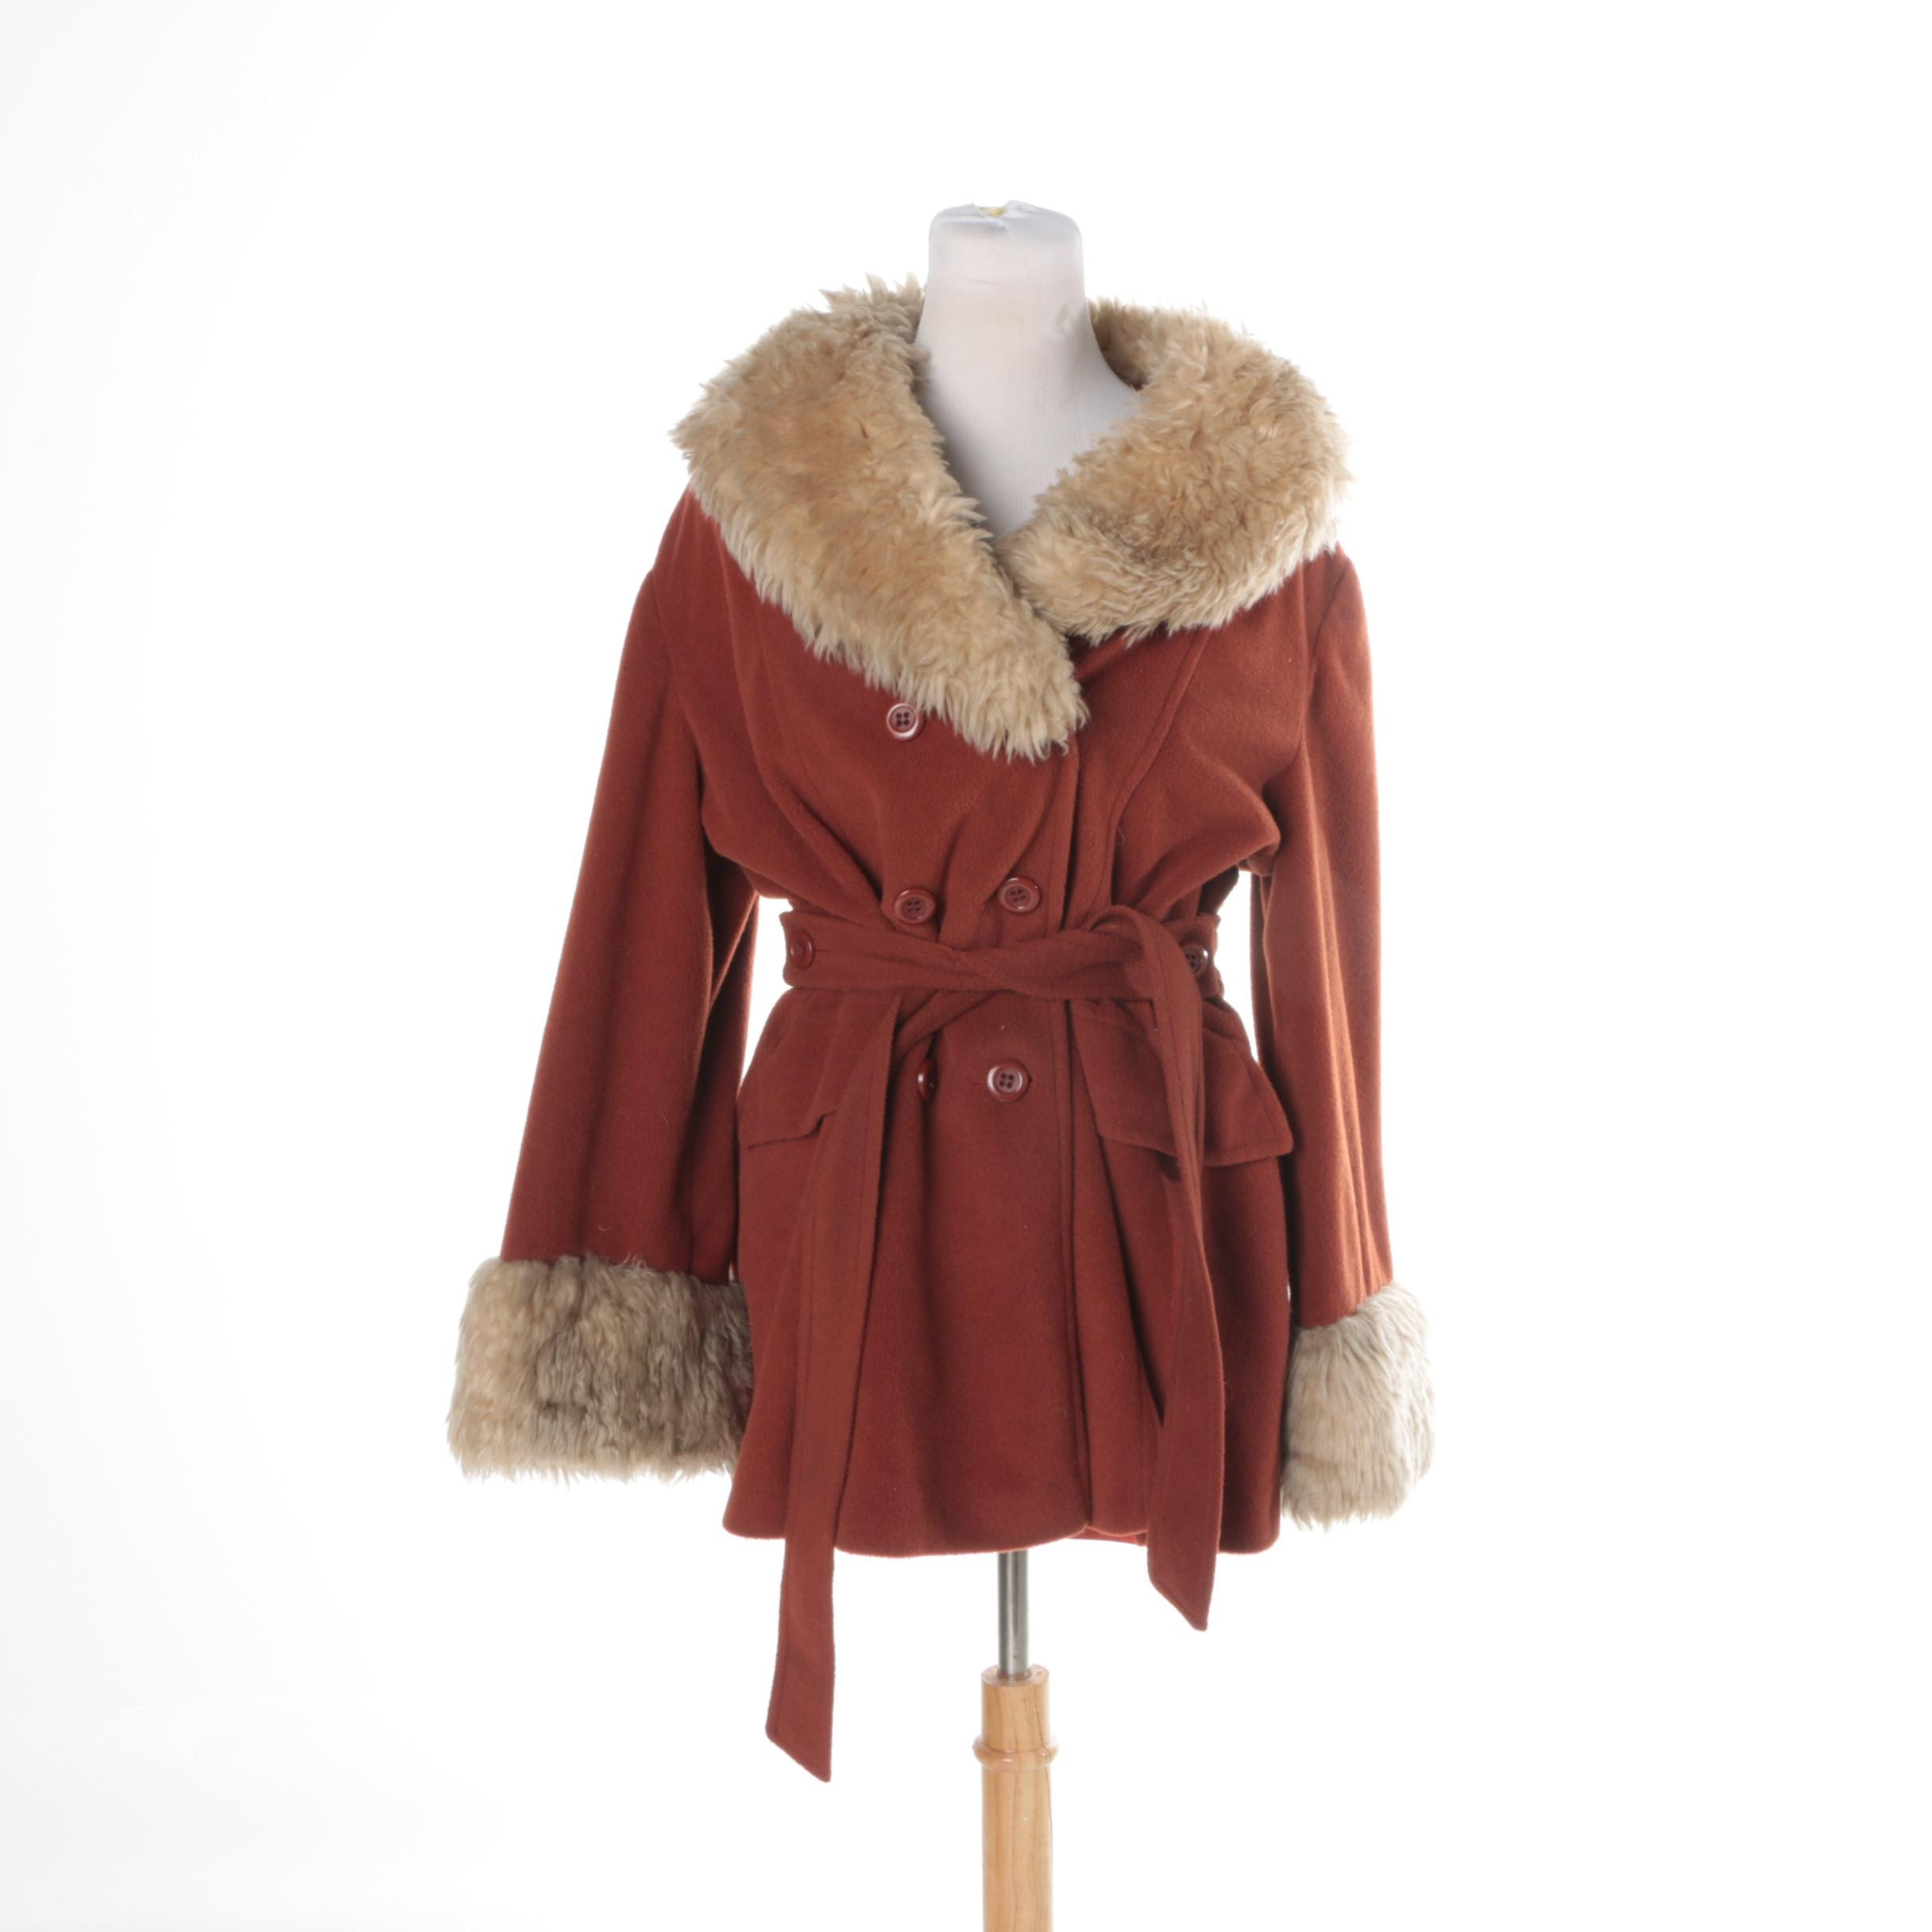 Women's Rust-Colored Wool Jacket with Faux Fur Collar